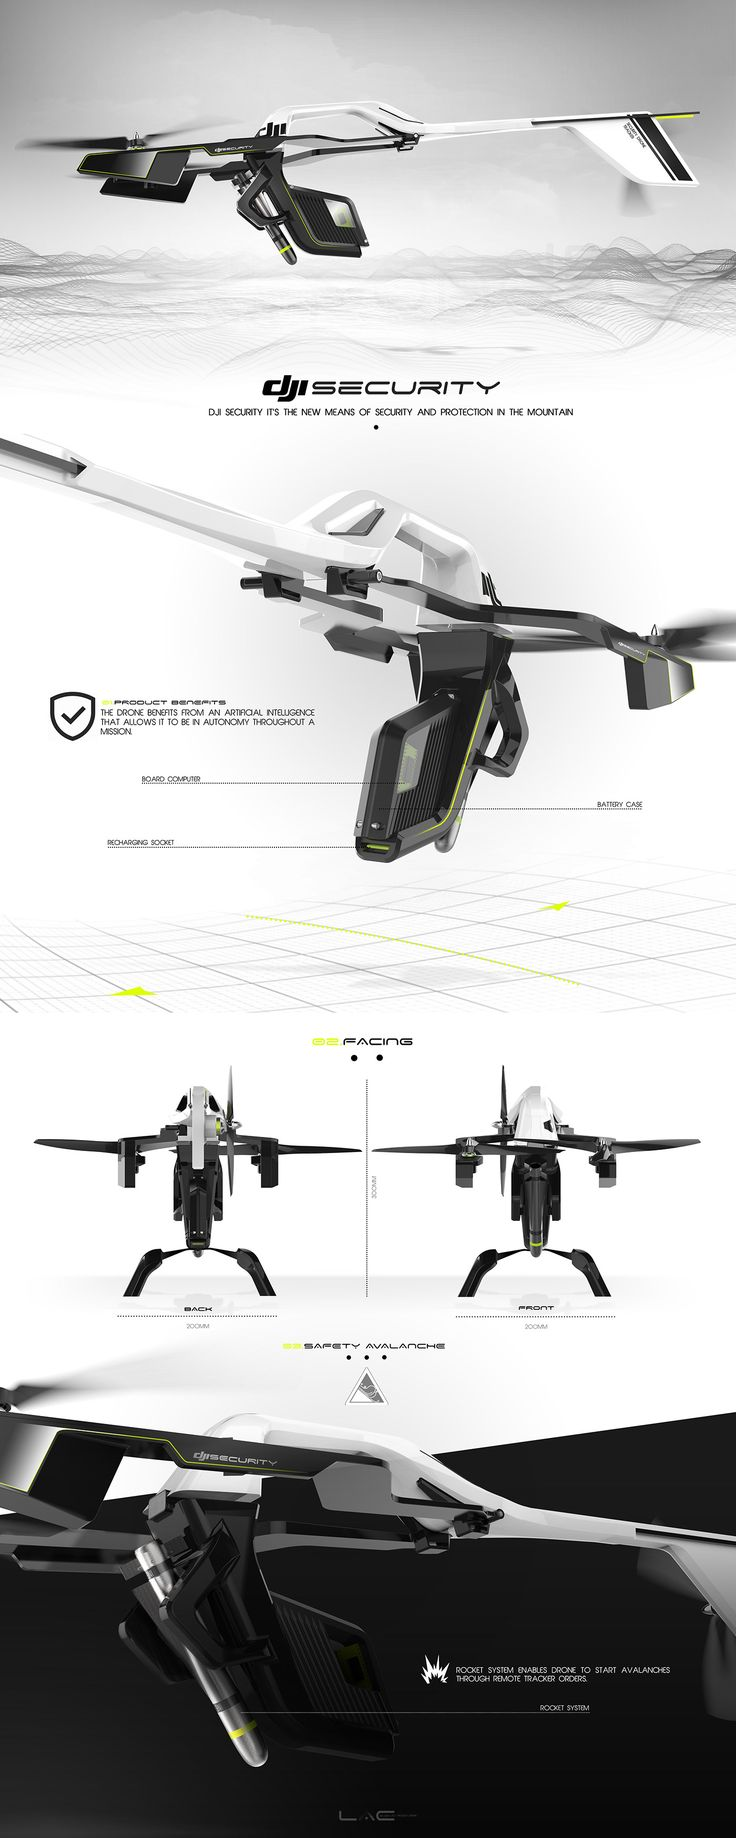 DJI DRONE SECURITY